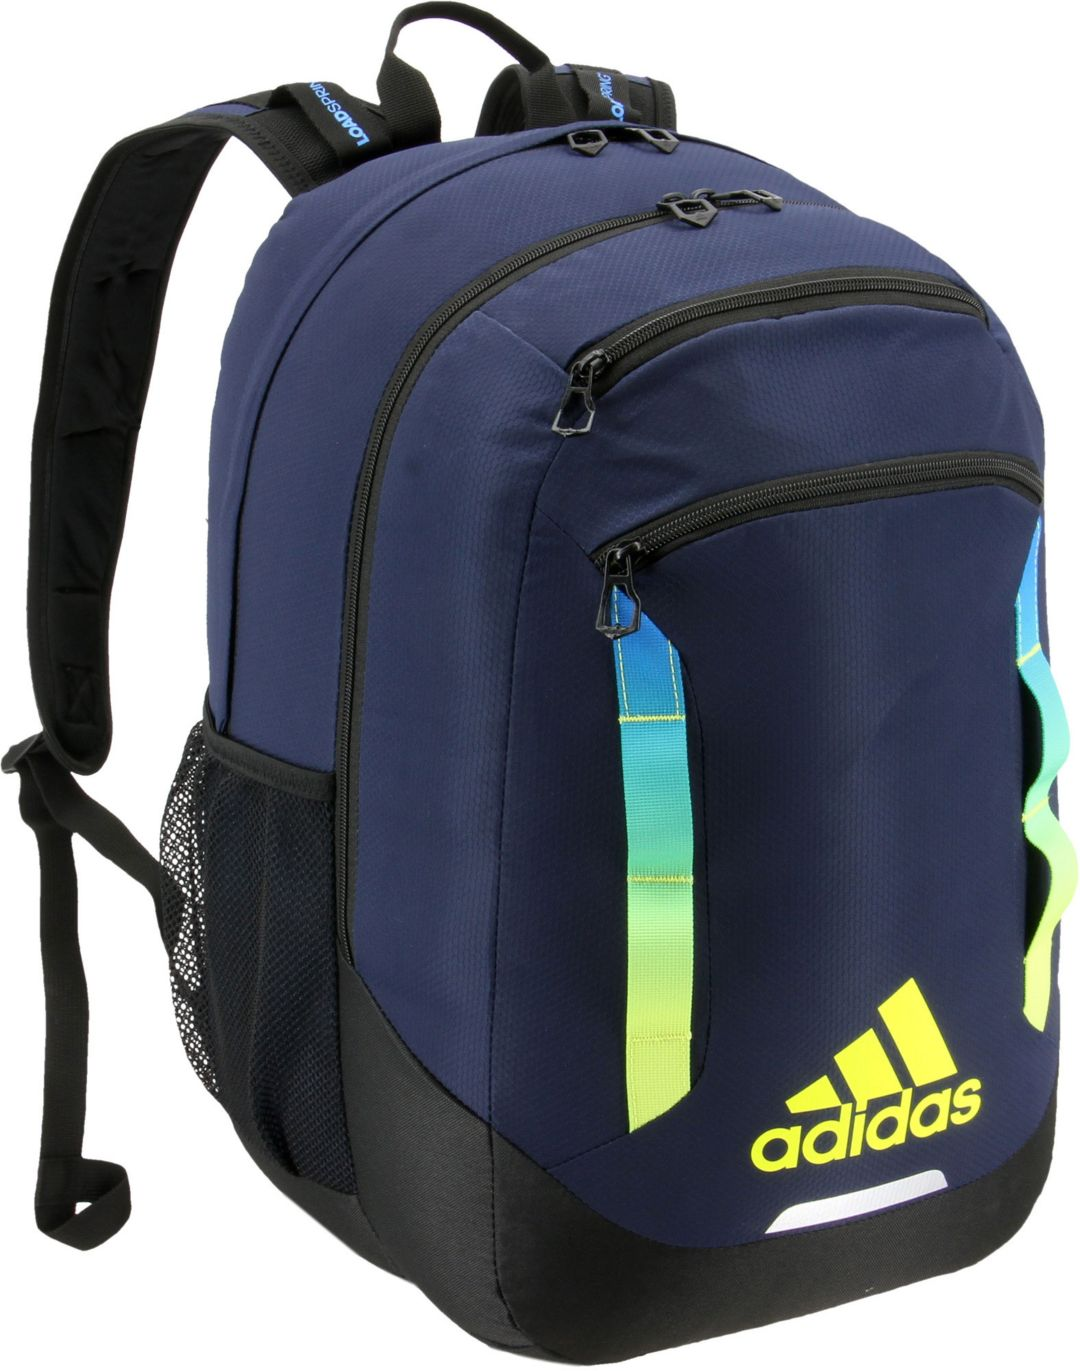 f807e31d097da adidas Rival XL Backpack | Best Price Guarantee at DICK'S